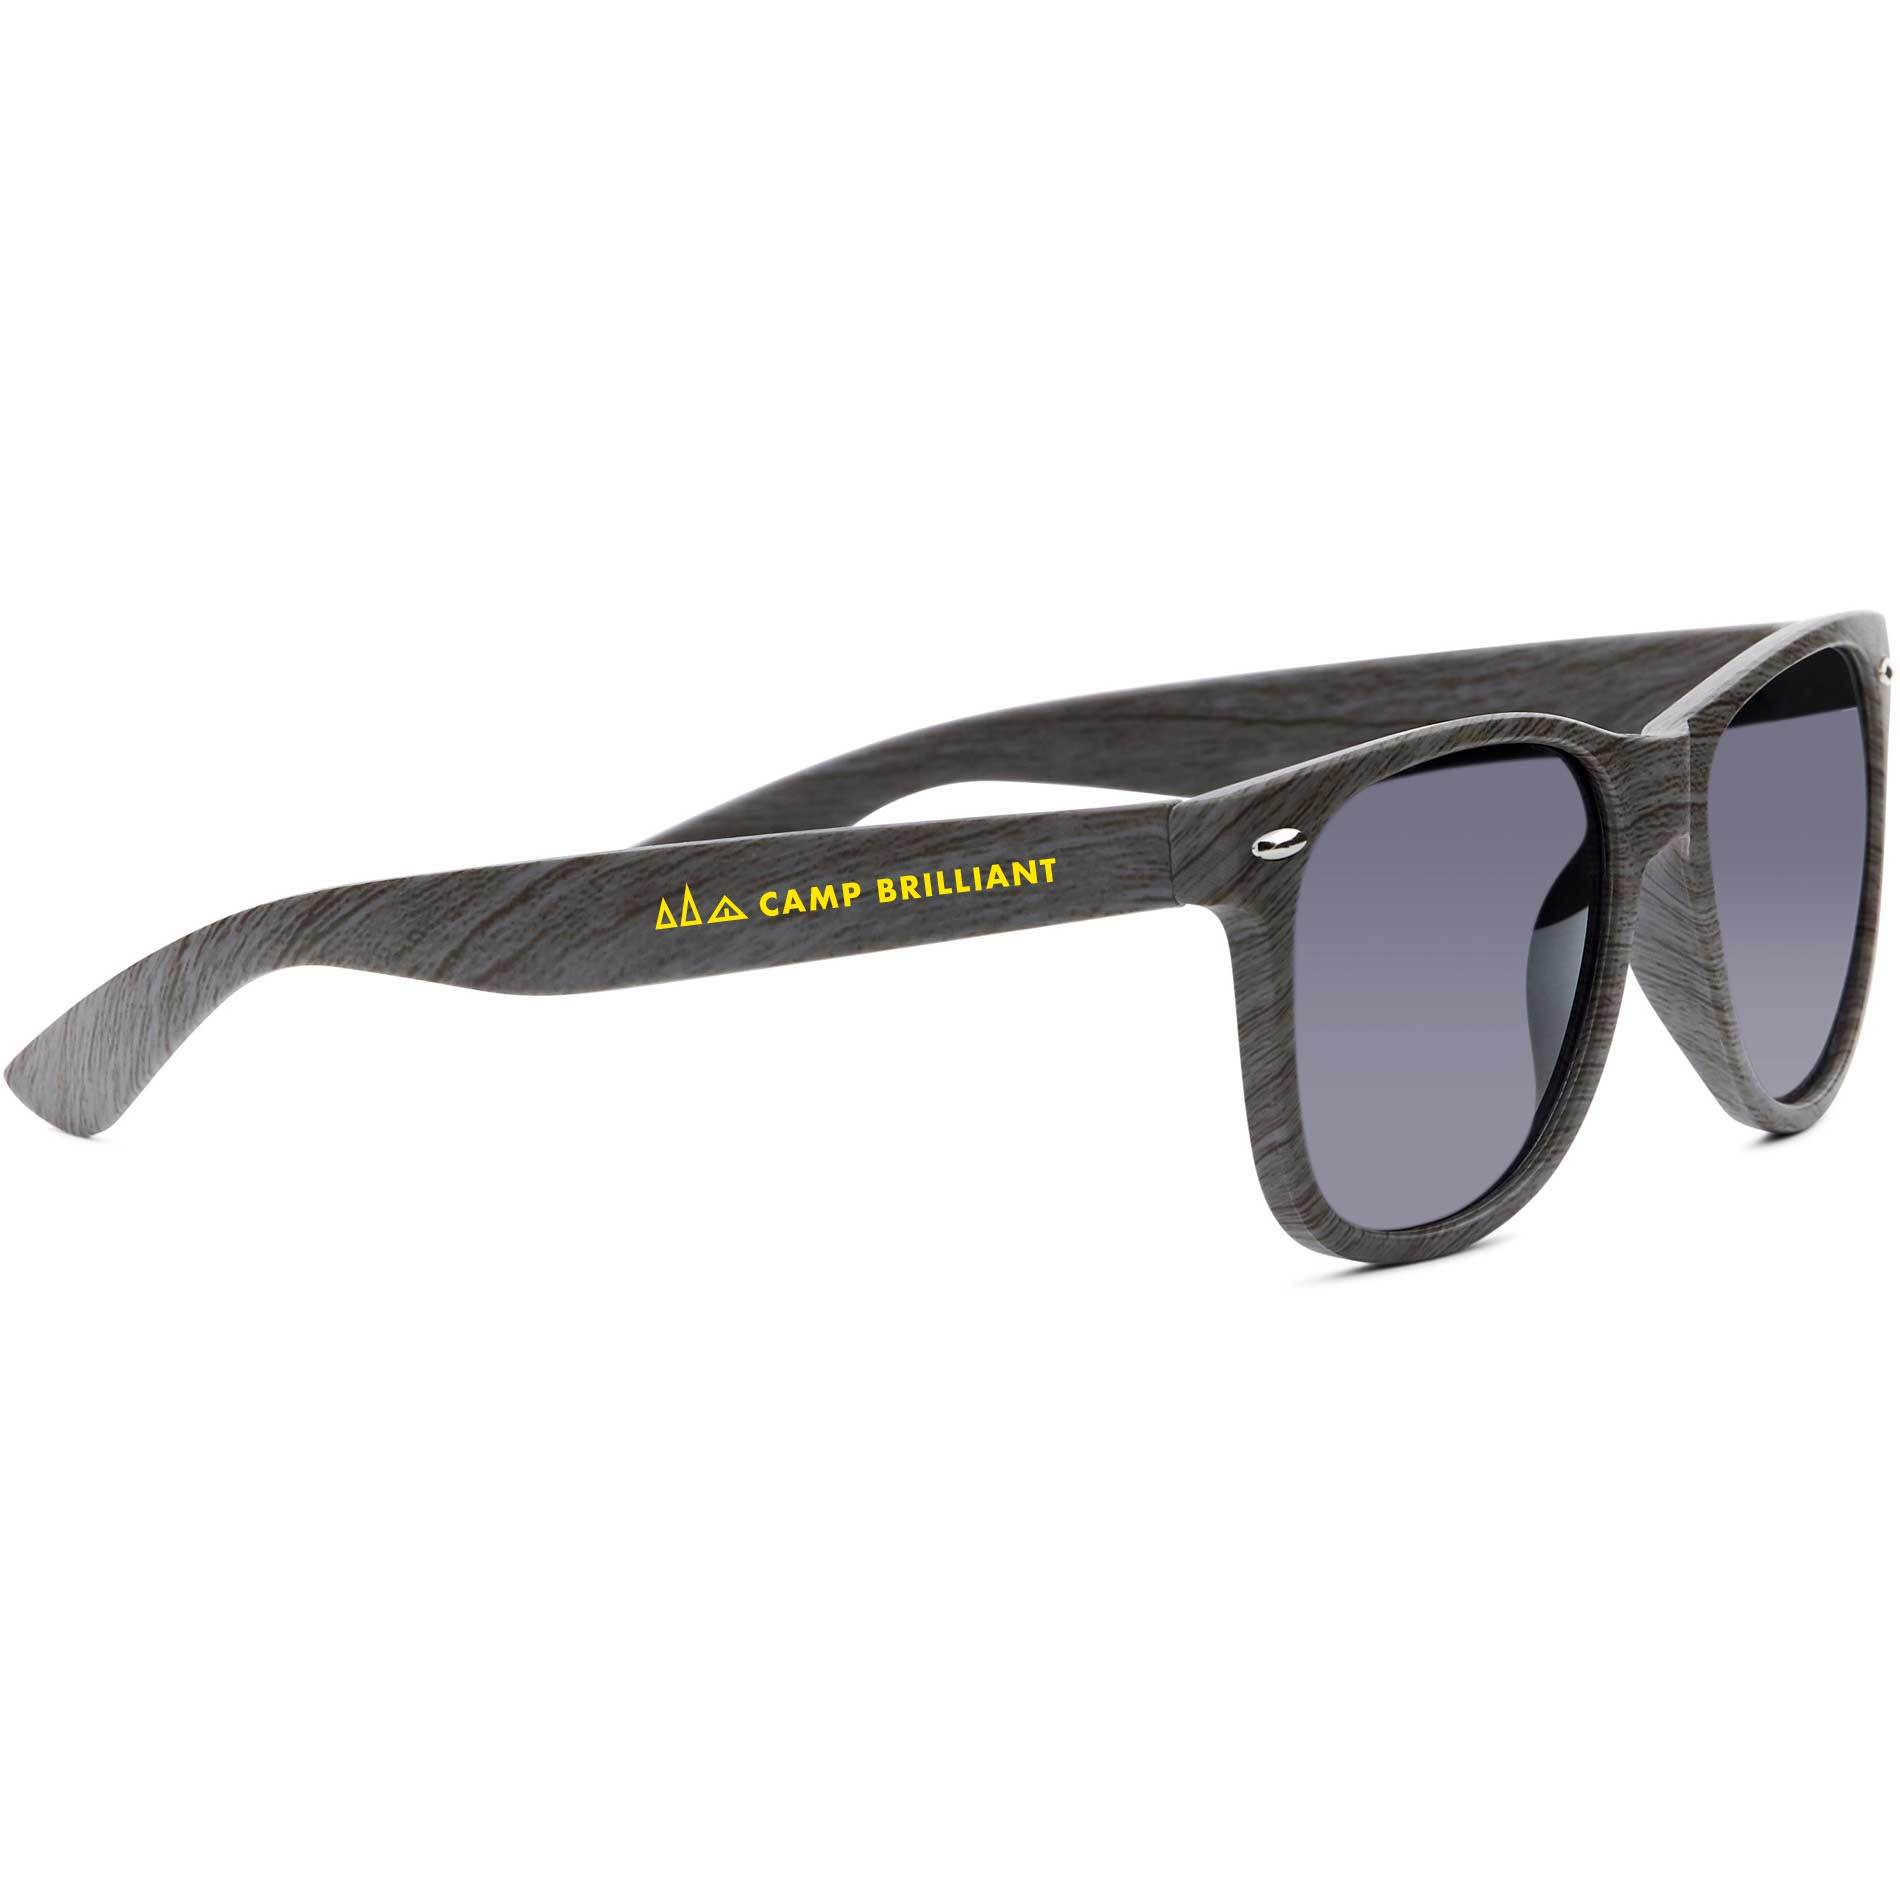 229566 aspyn sunglasses one color one location imprint